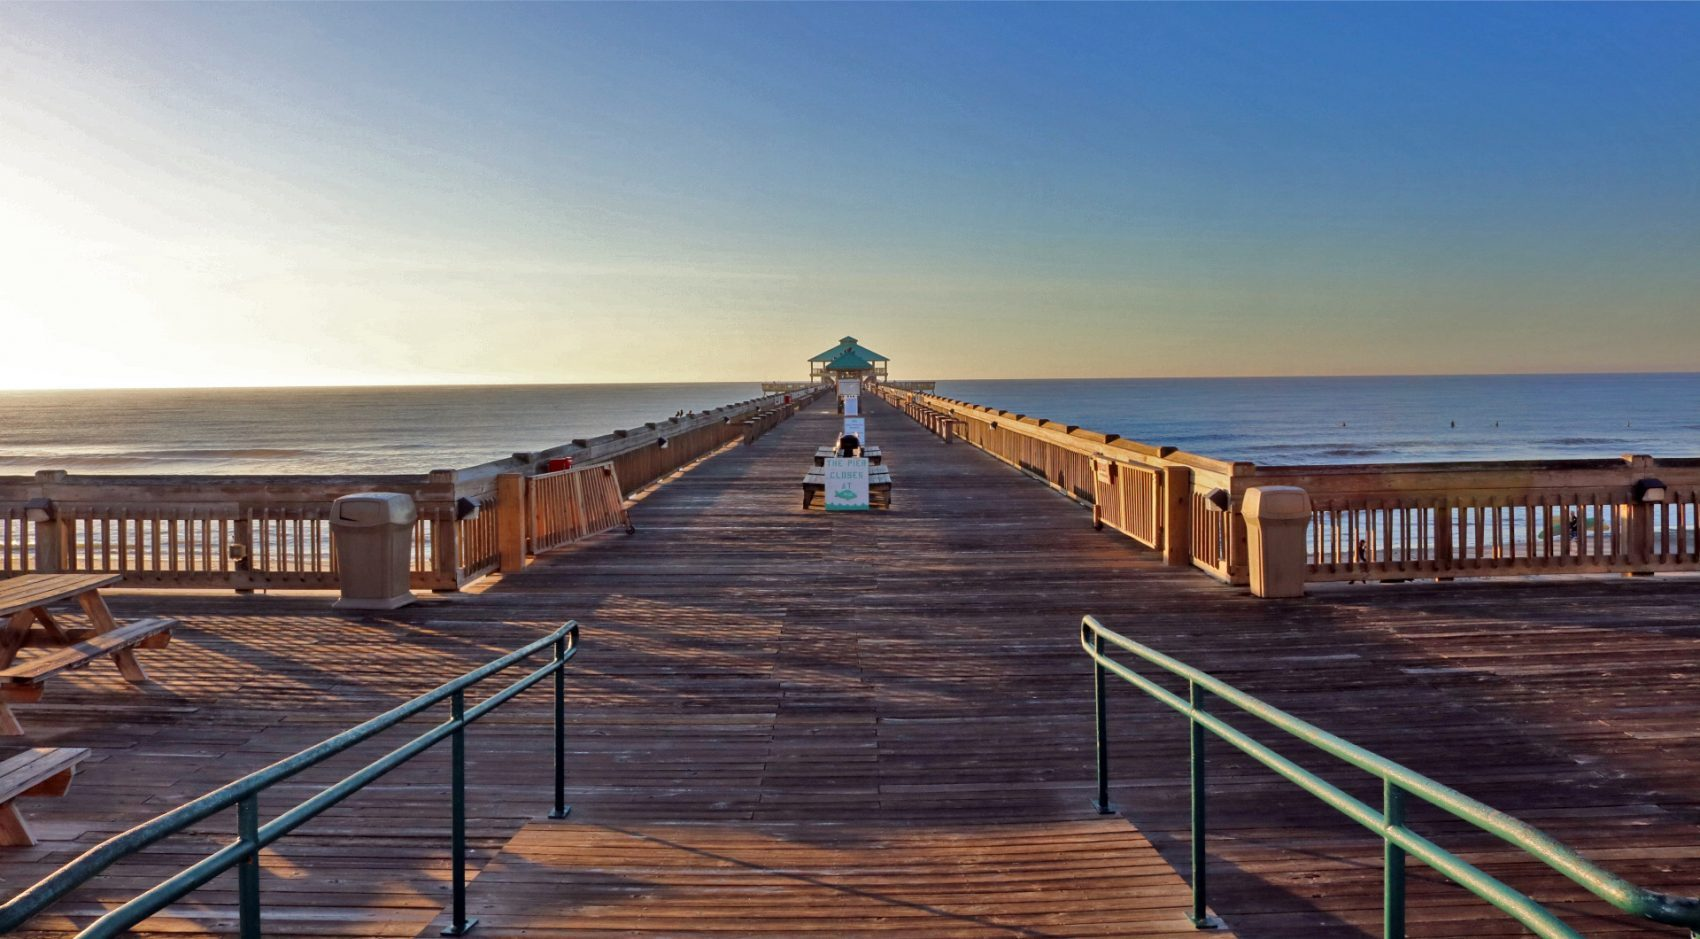 What You Need To Know About The Folly Beach Pier | FollyBeach com®